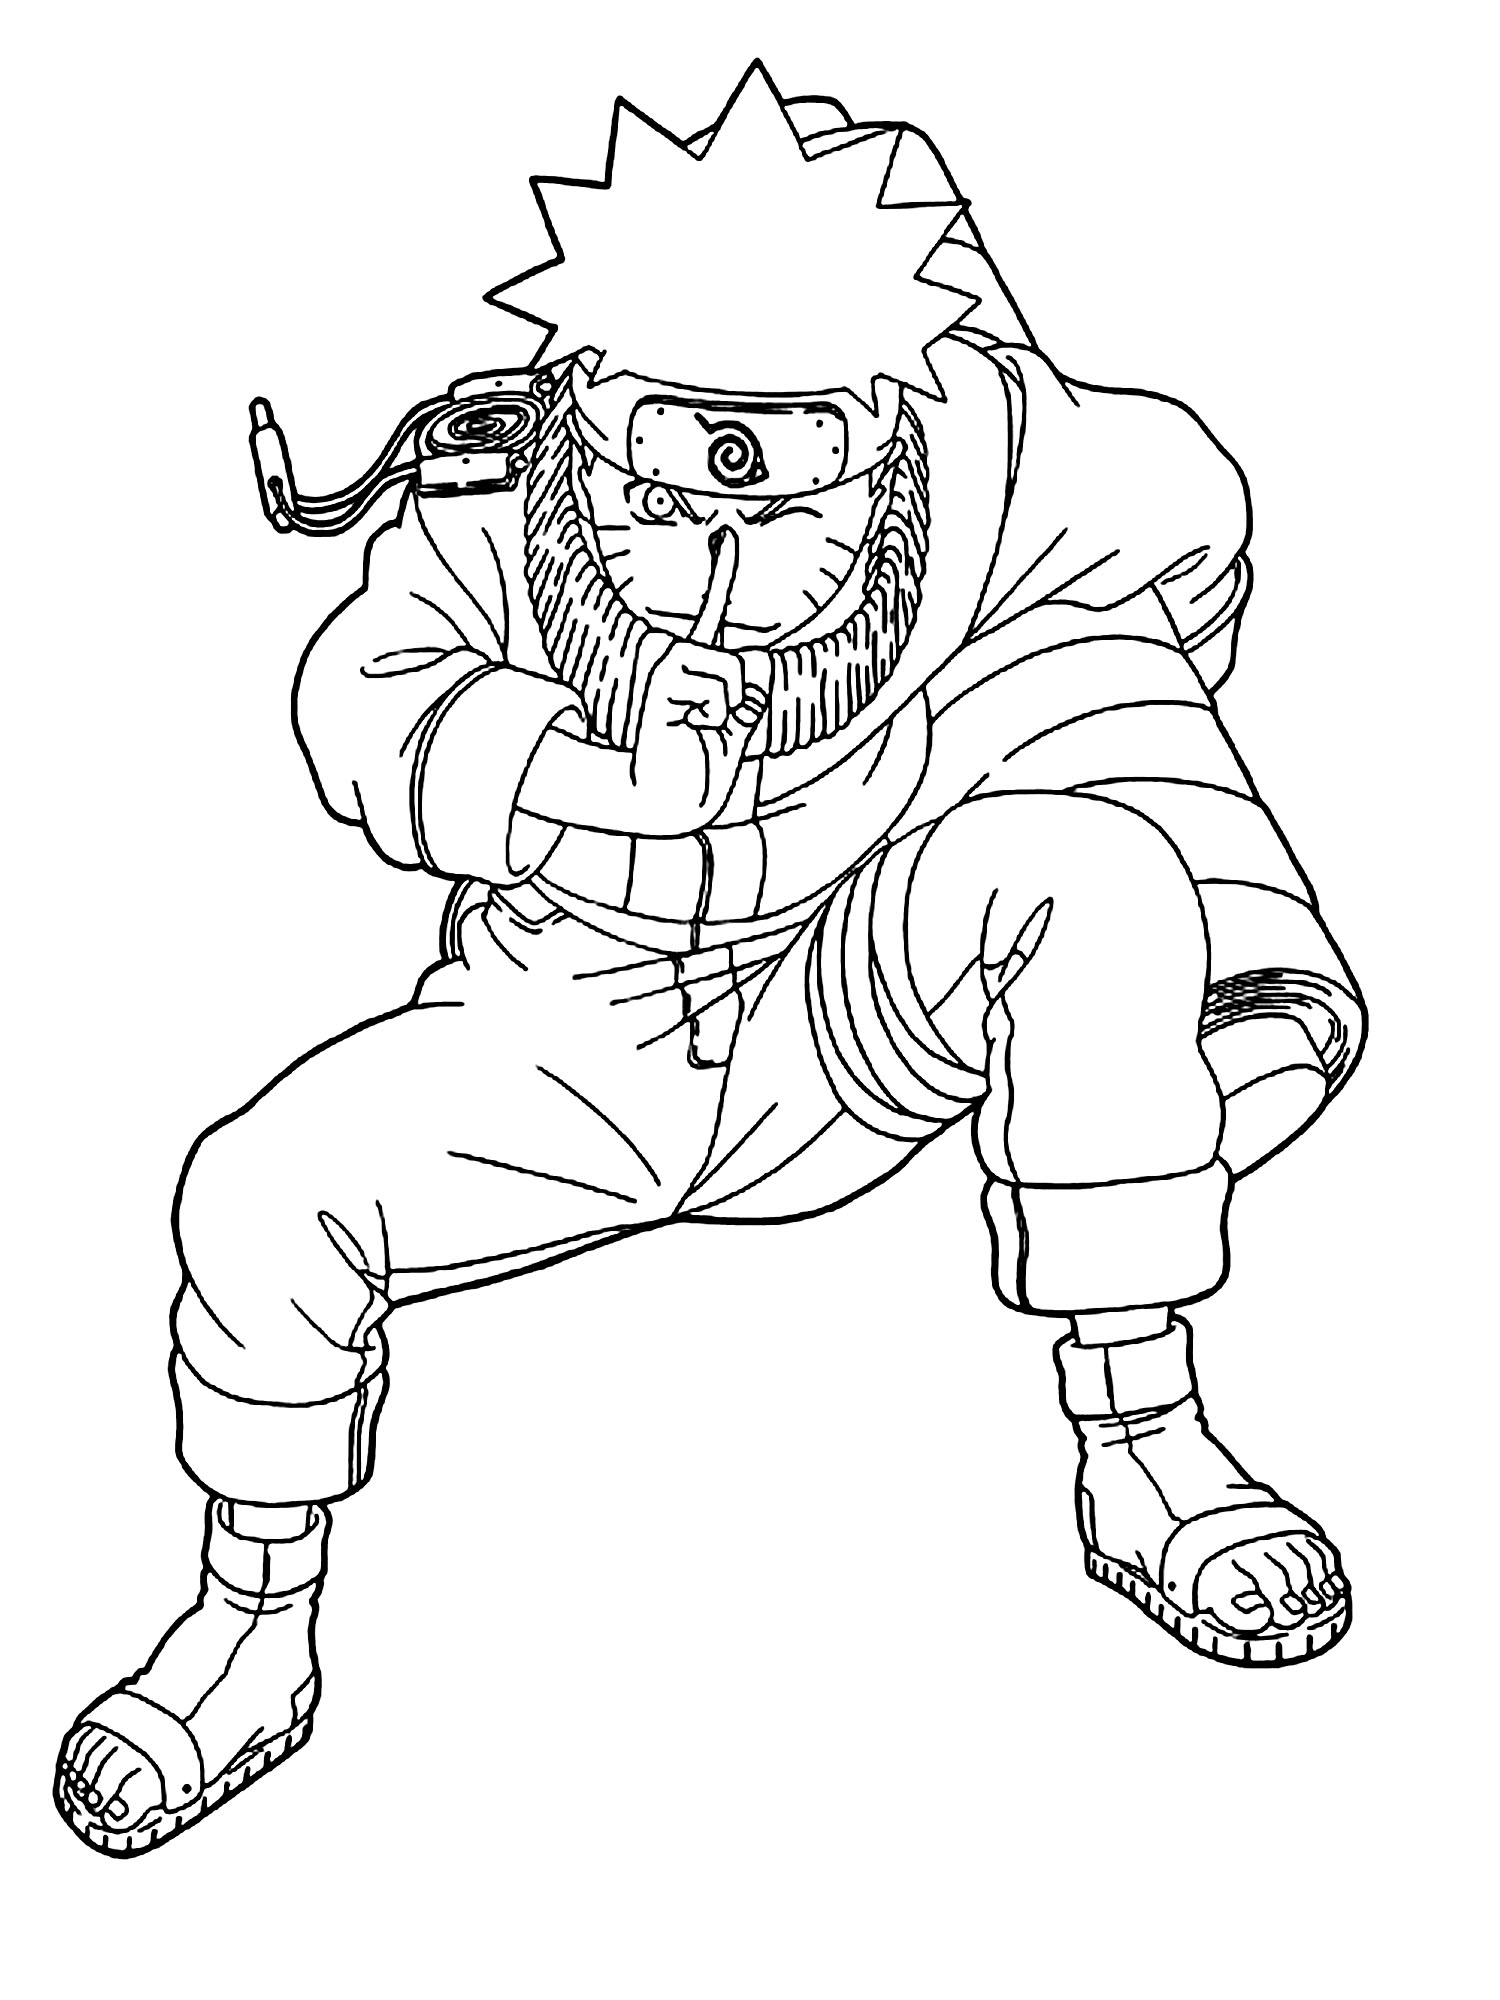 Naruto to print for free - Naruto Kids Coloring Pages